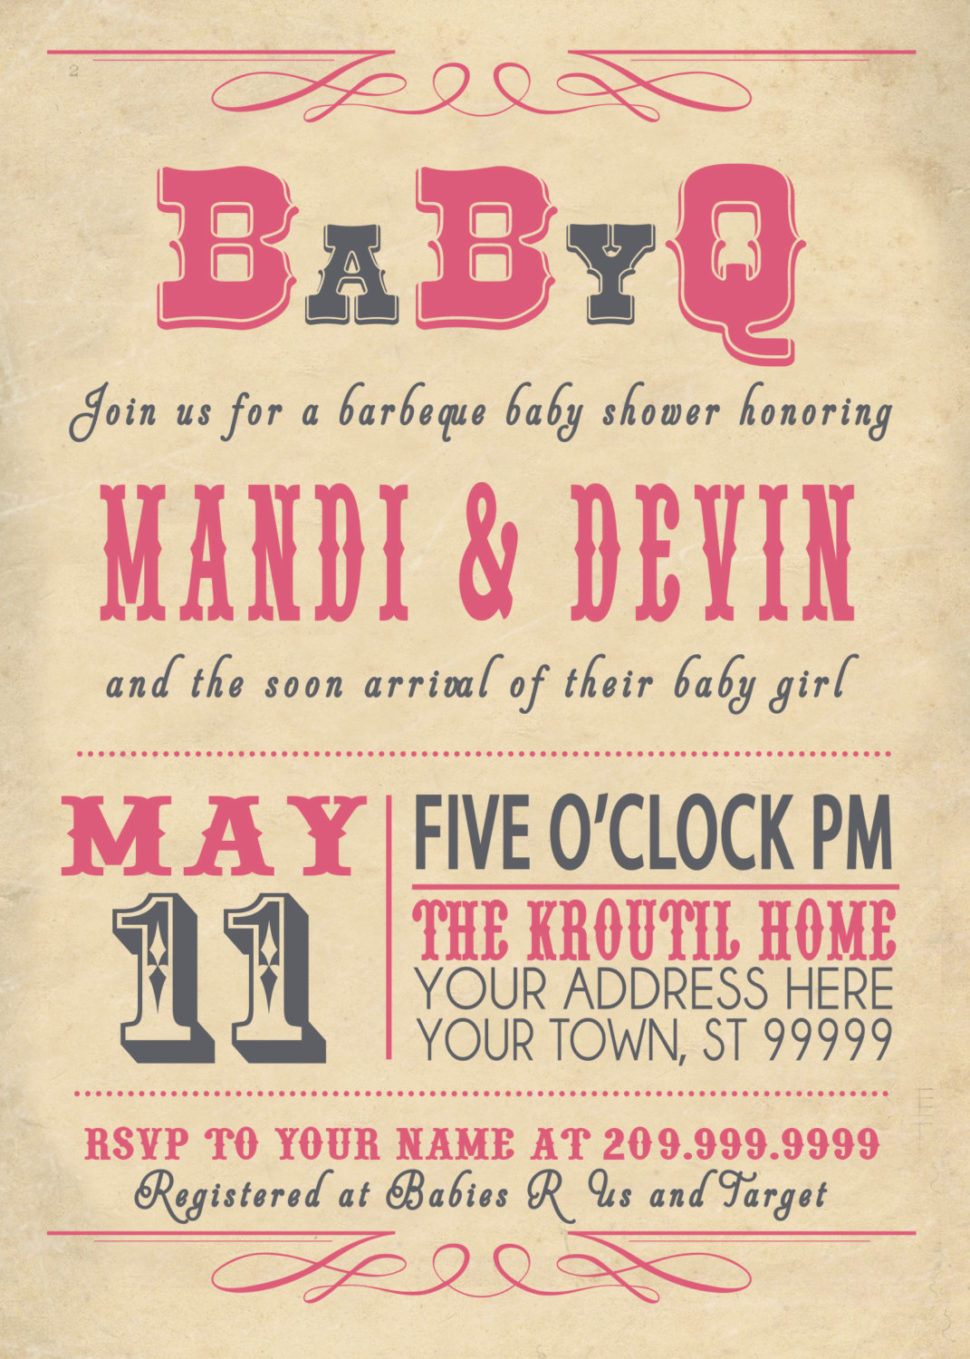 Medium Size of Baby Shower:delightful Baby Shower Invitation Wording Picture Designs Cheap Baby Shower Favors With Baby Boy Shower Favors Plus Baby Shower Outfit Guest Together With Cheap Baby Shower Gifts As Well As How To Plan A Baby Shower And Baby Shower Images